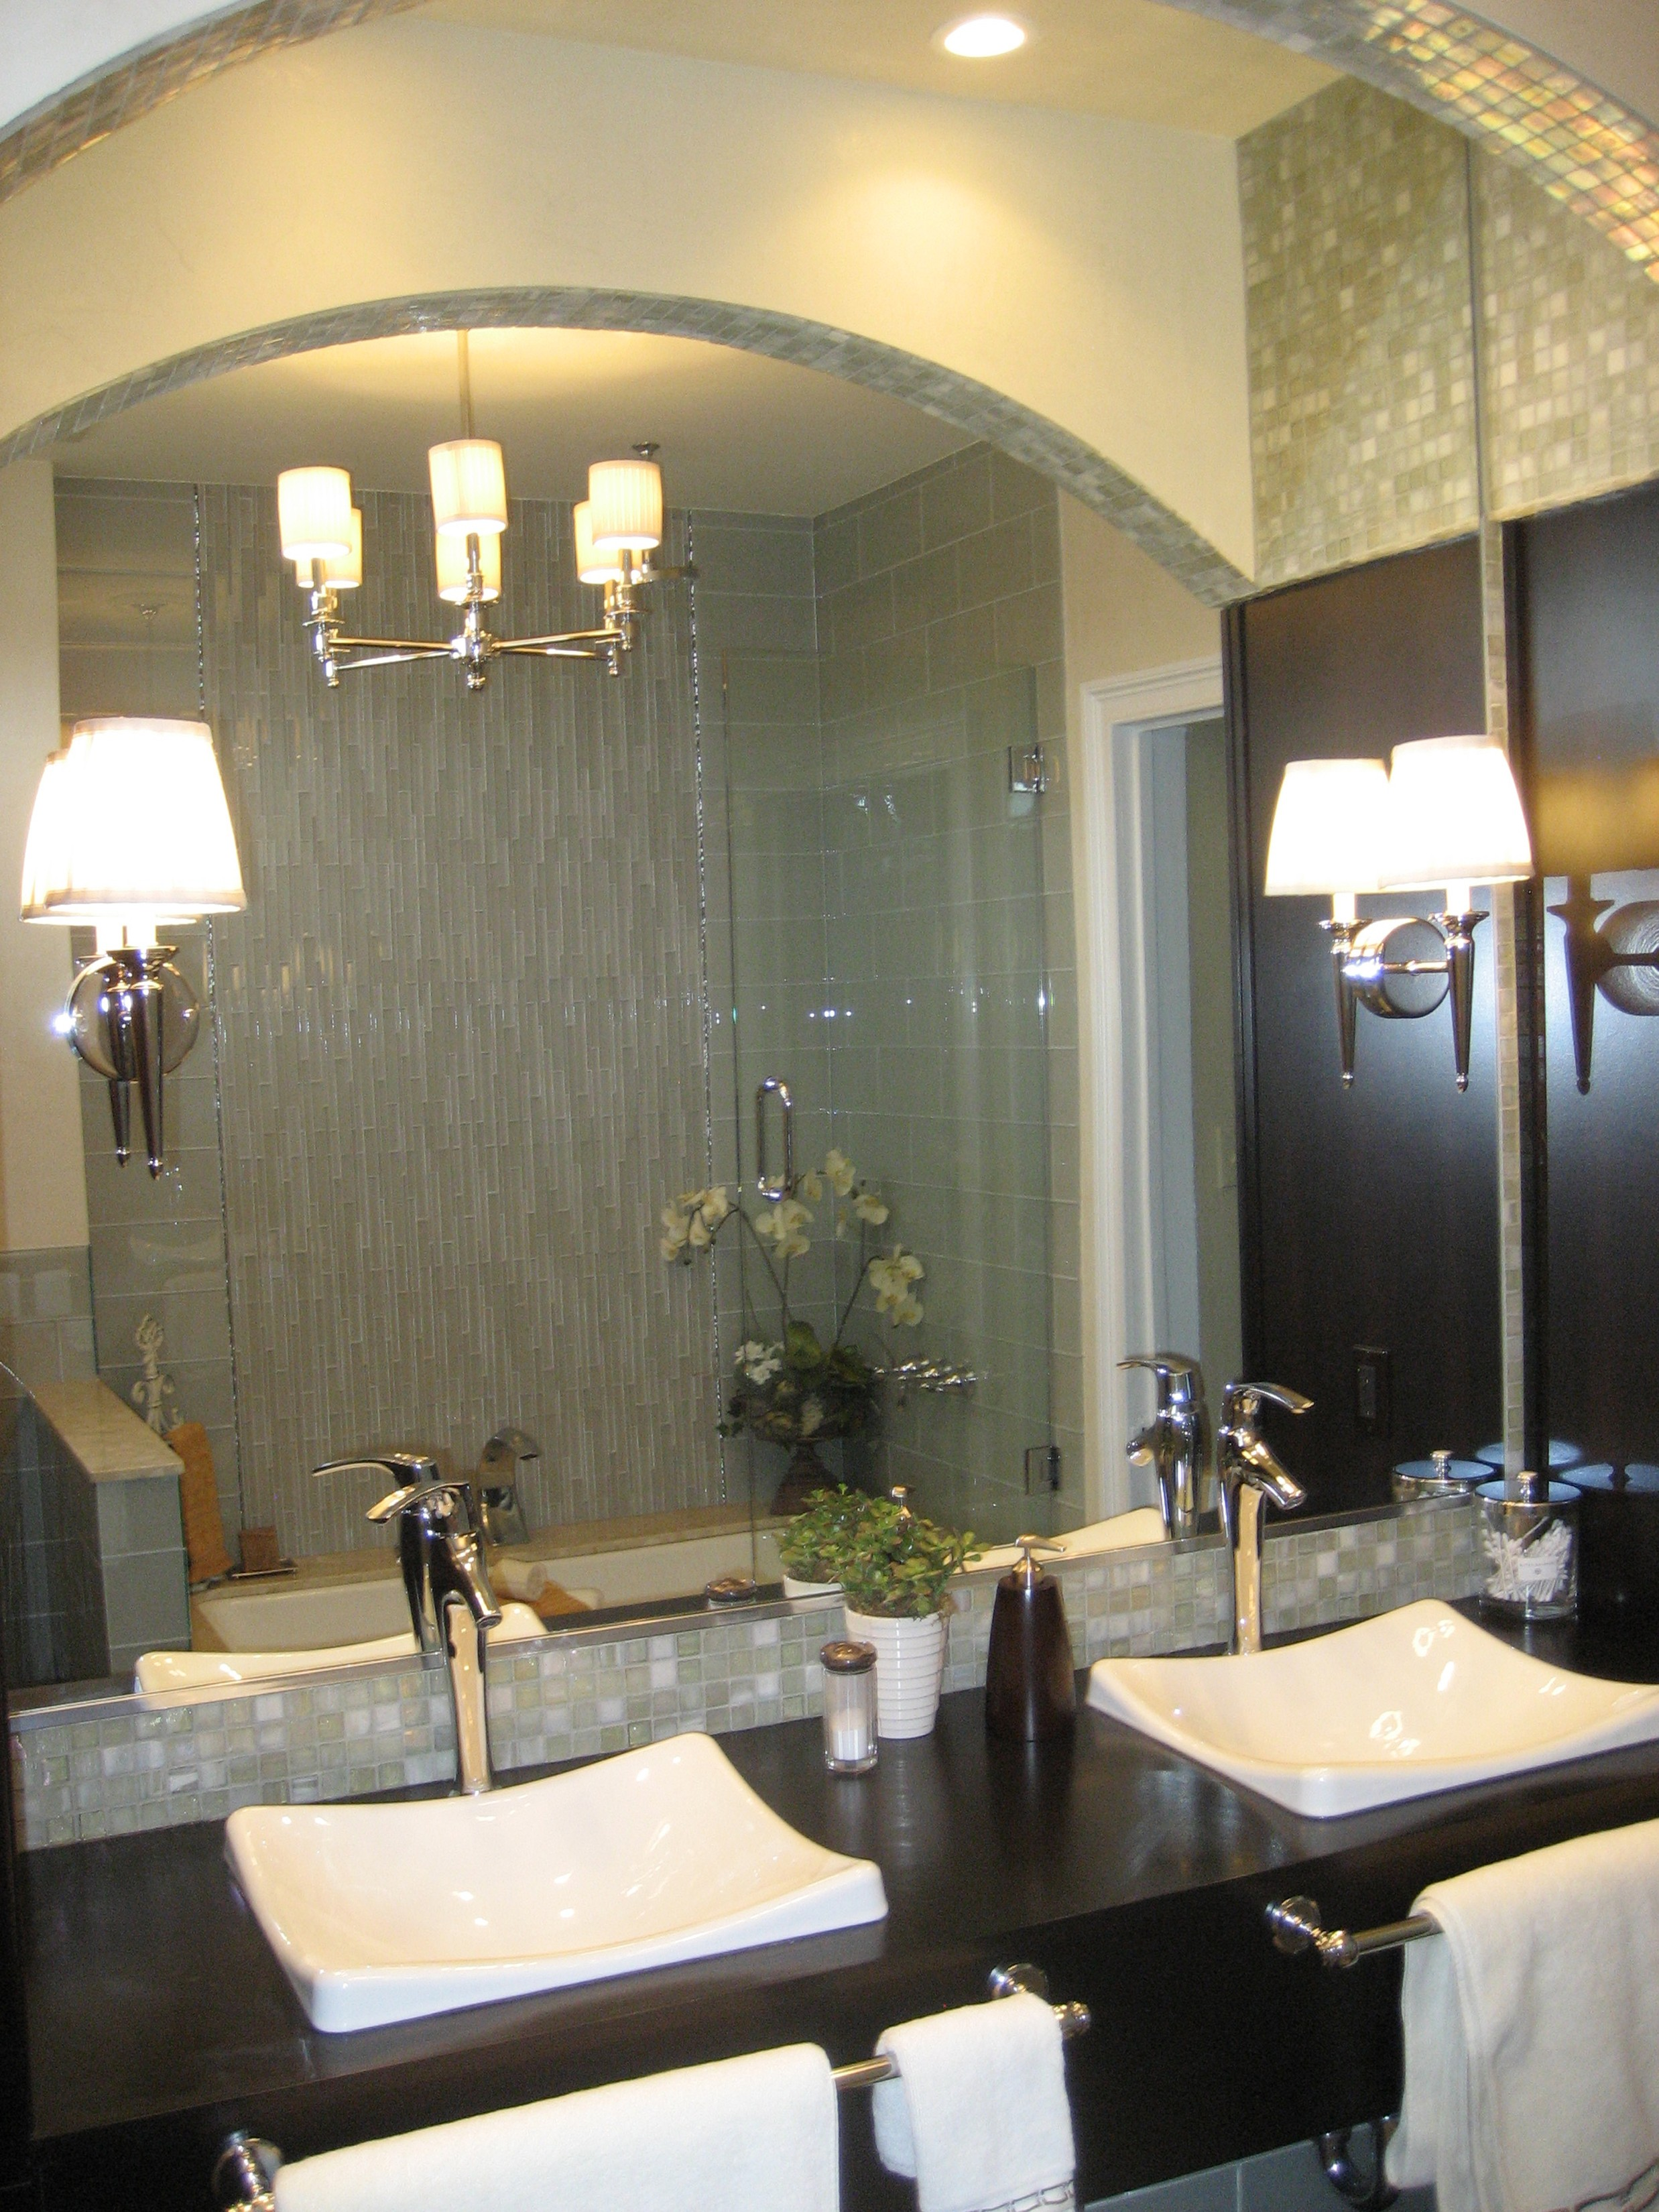 Bathroom lighting options design build pros bathroom lights design build pros 1 aloadofball Image collections